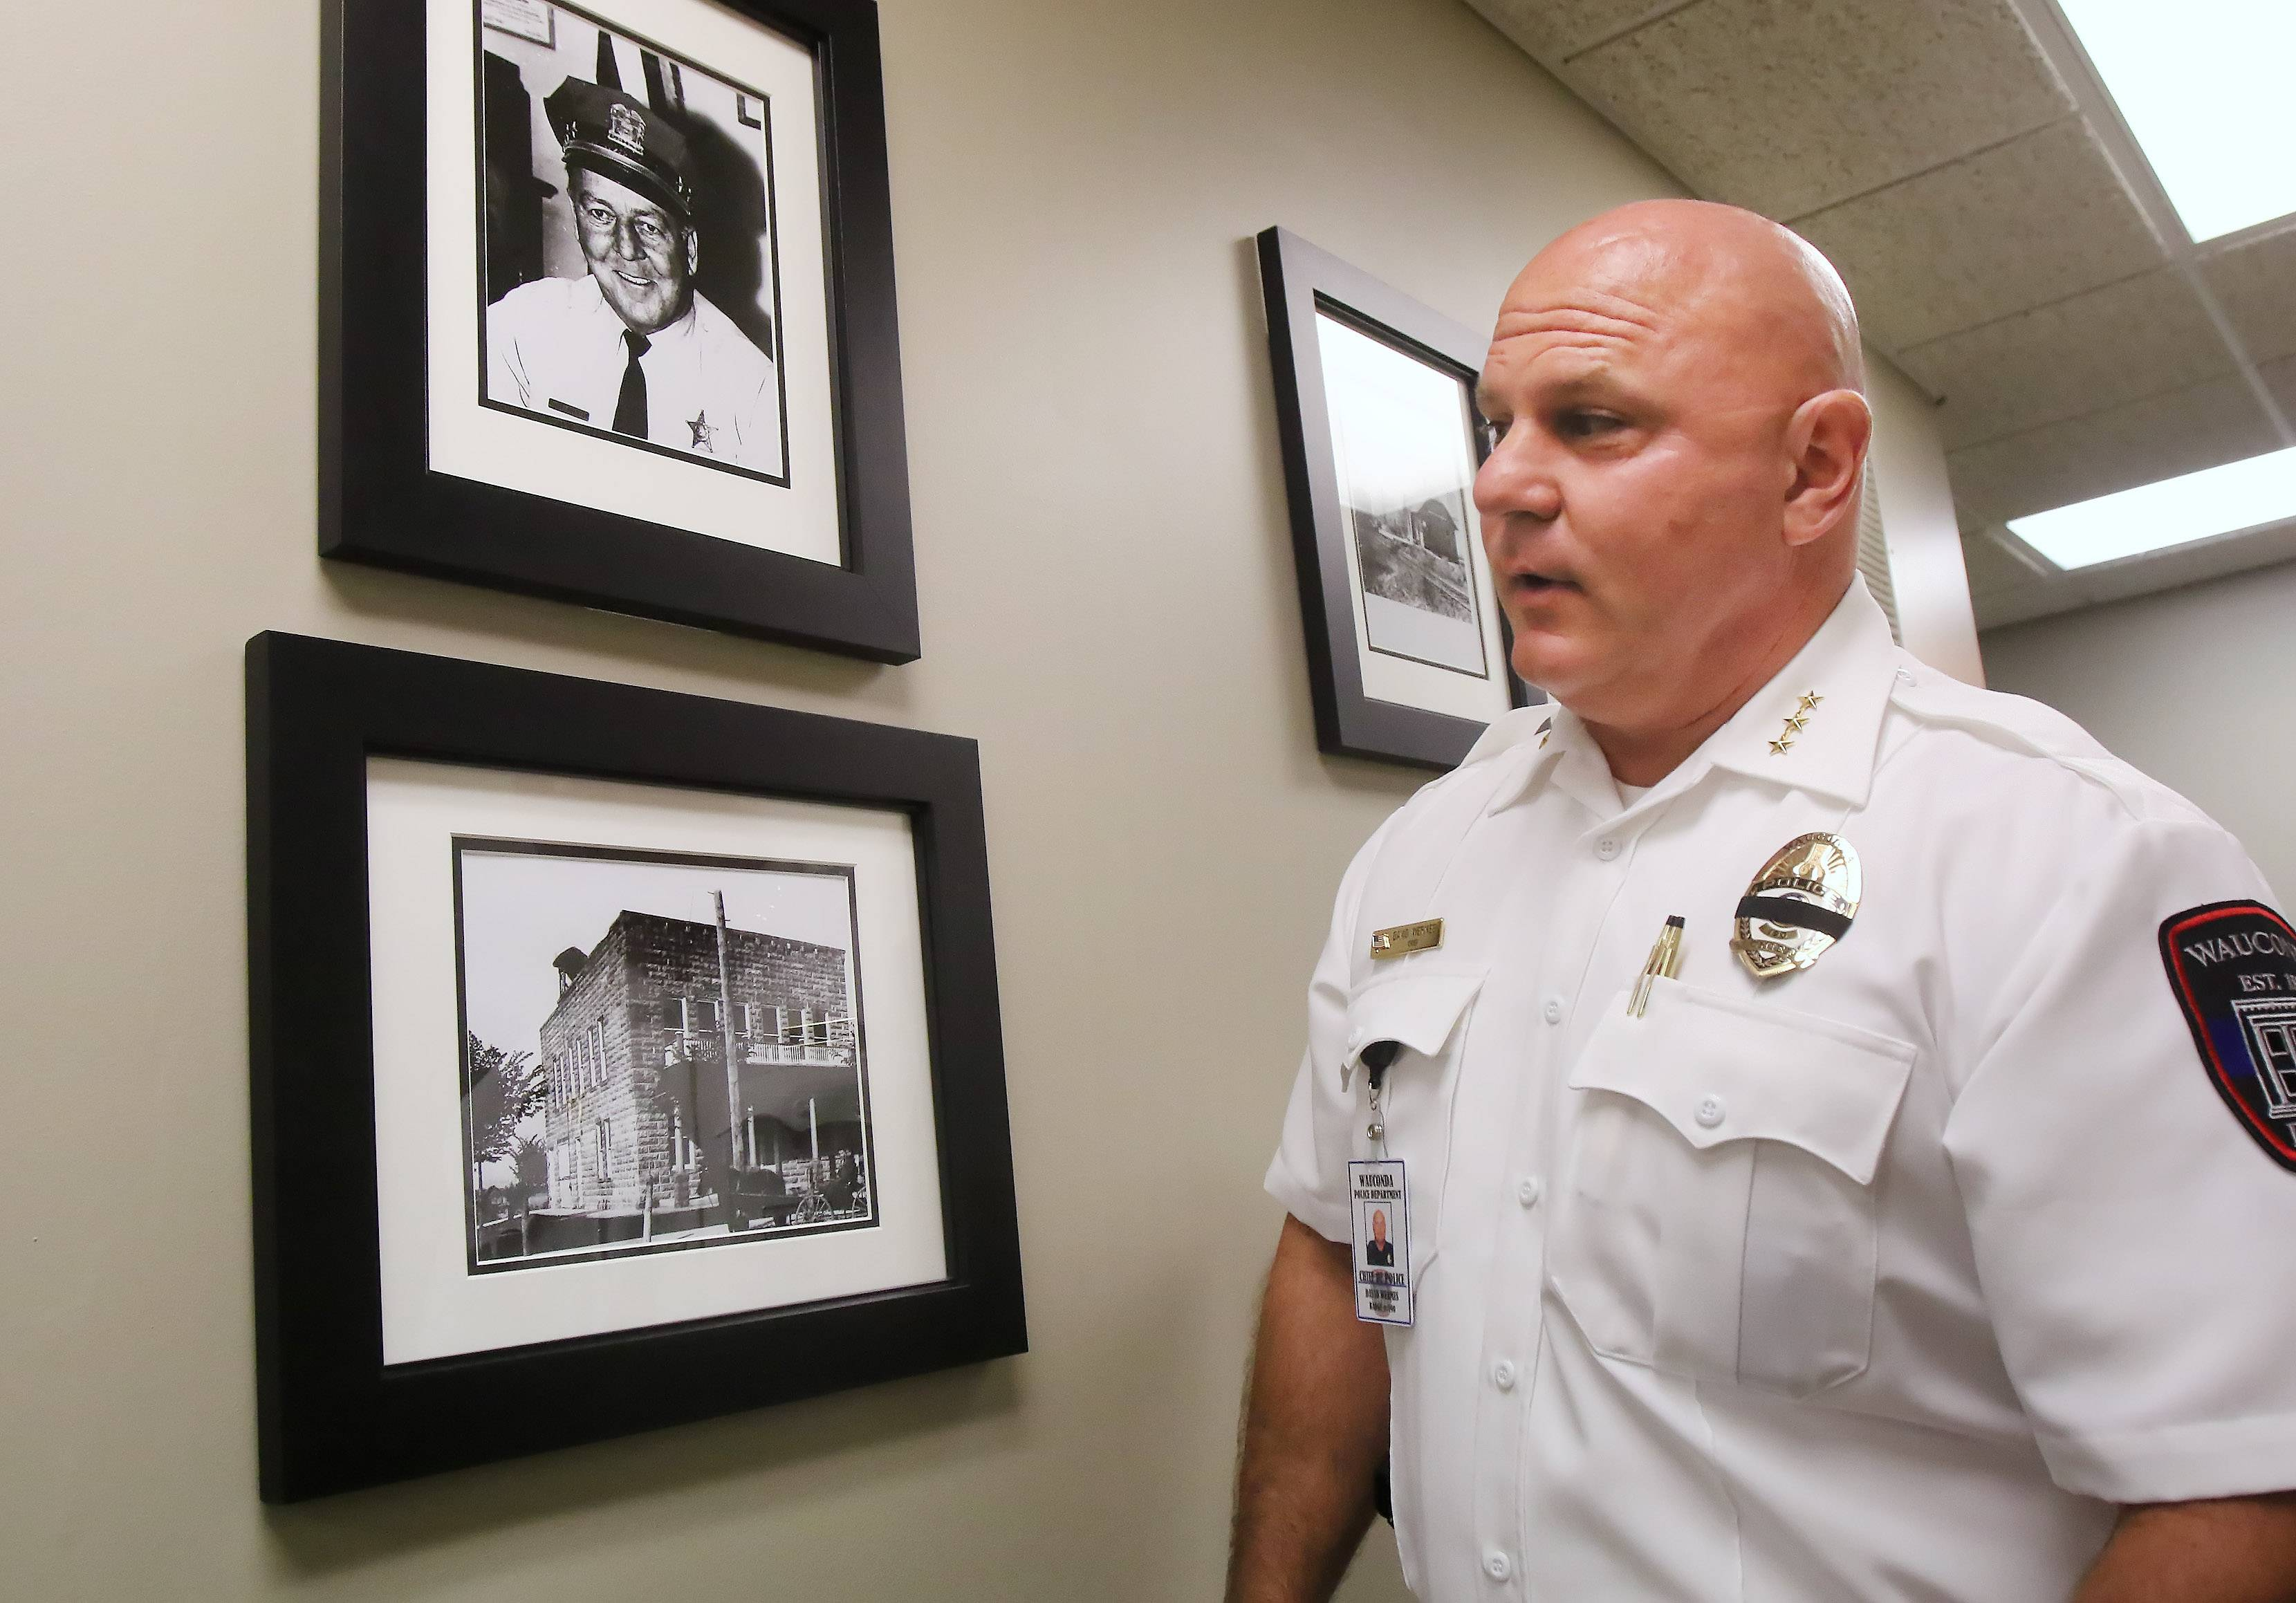 Wauconda Police Chief David Wermes is collecting historical pictures of the police department for a project designed to boost morale.